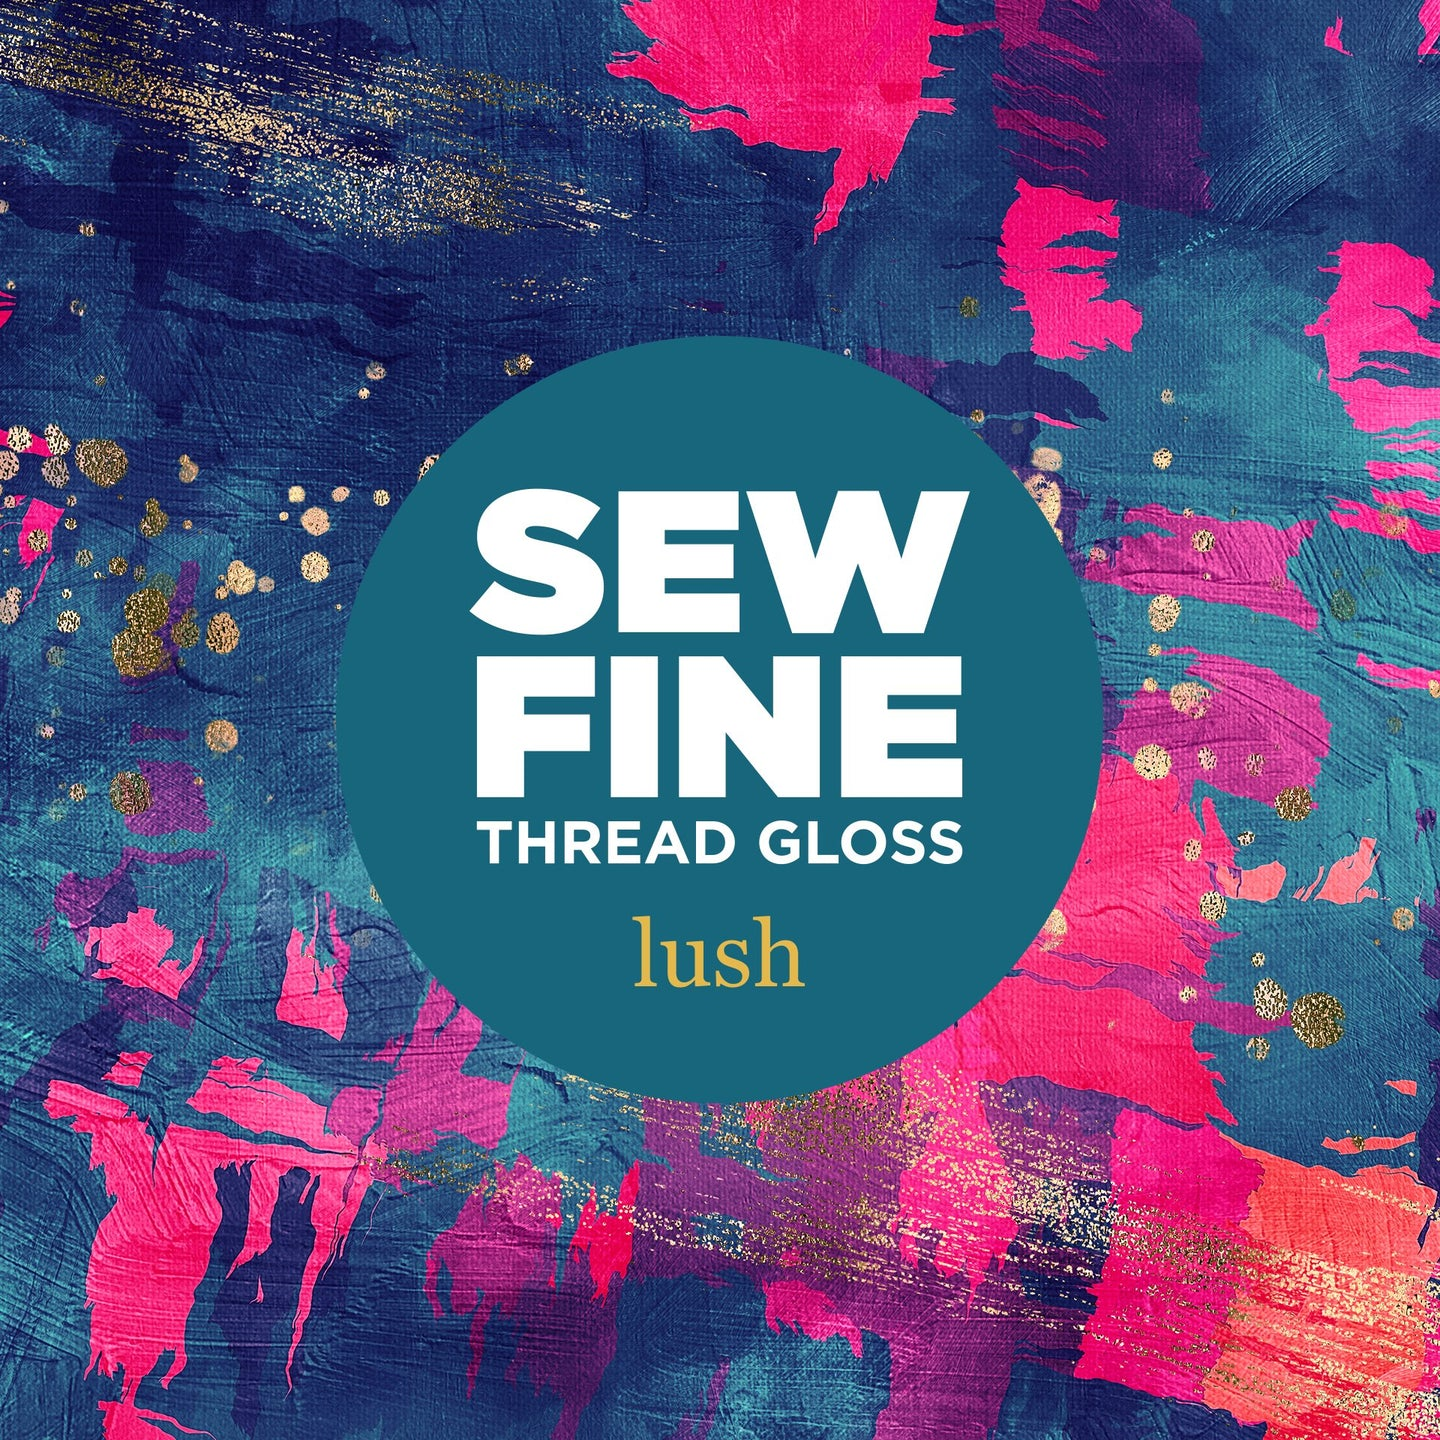 Sew Fine Thread Gloss Lush